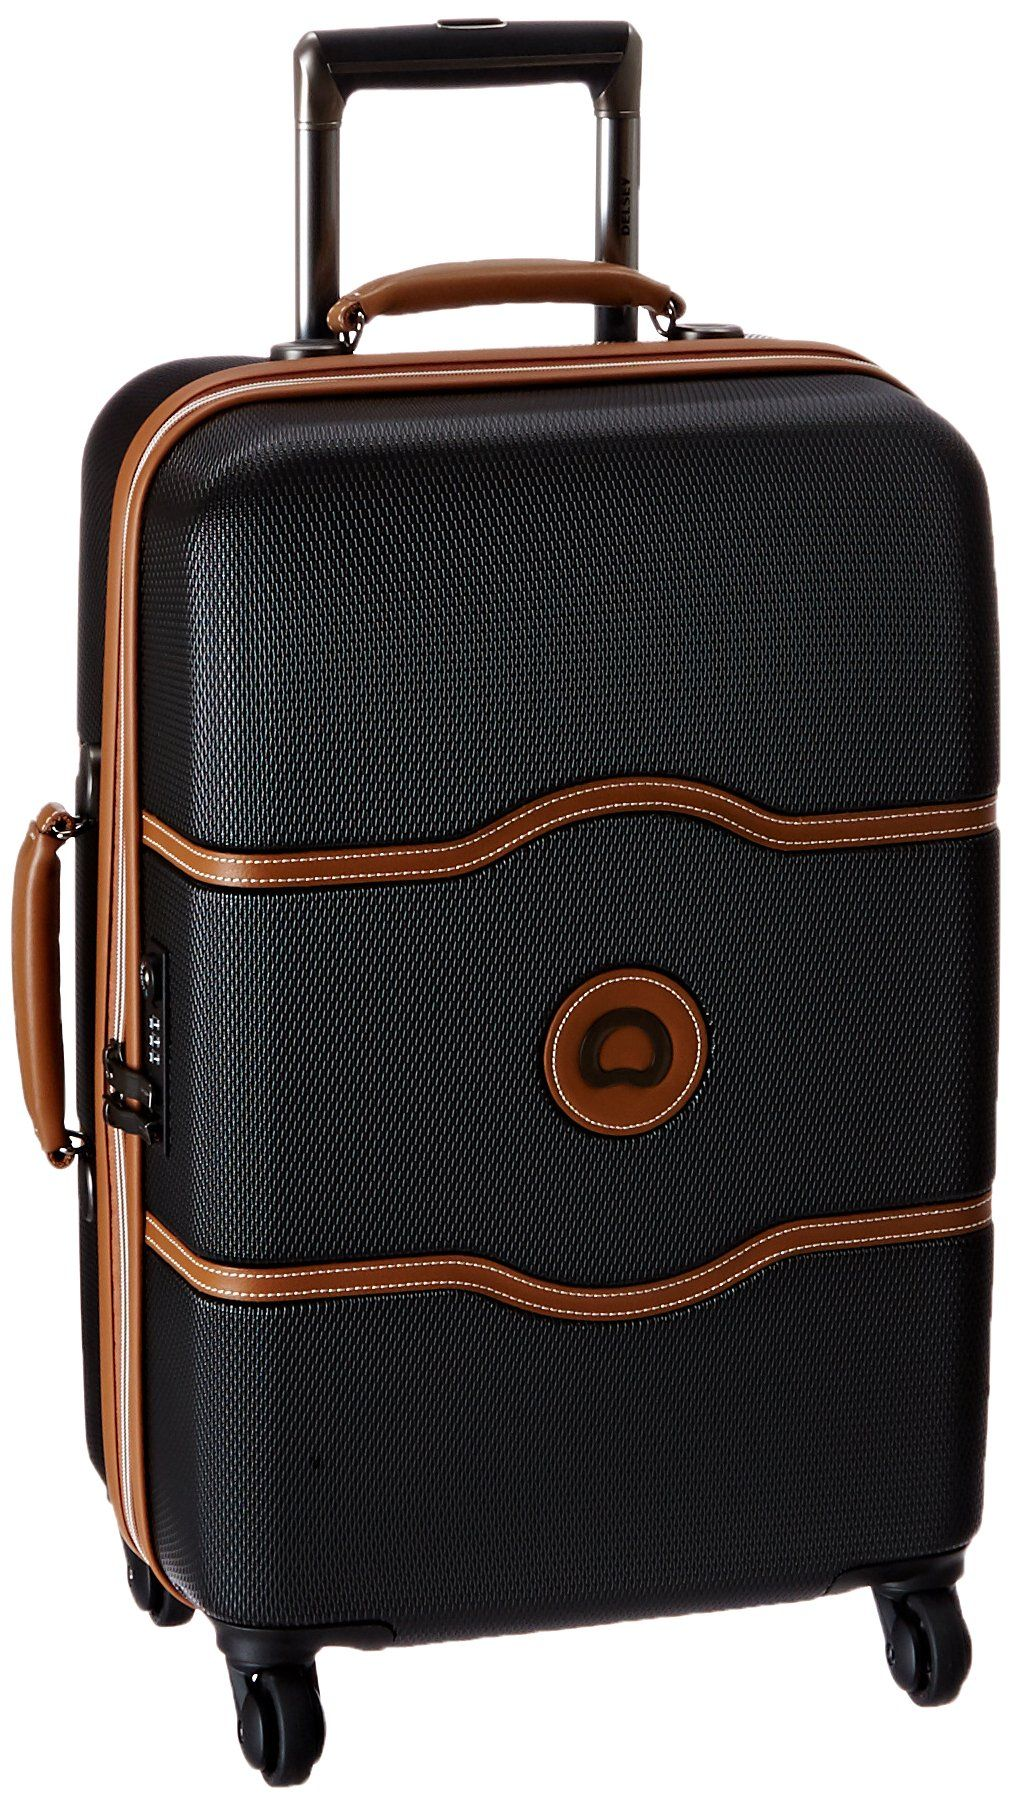 2878ad9b8f03 Delsey Luggage Chatelet 21 Inch Carry-On Spinner, Black, One Size ...